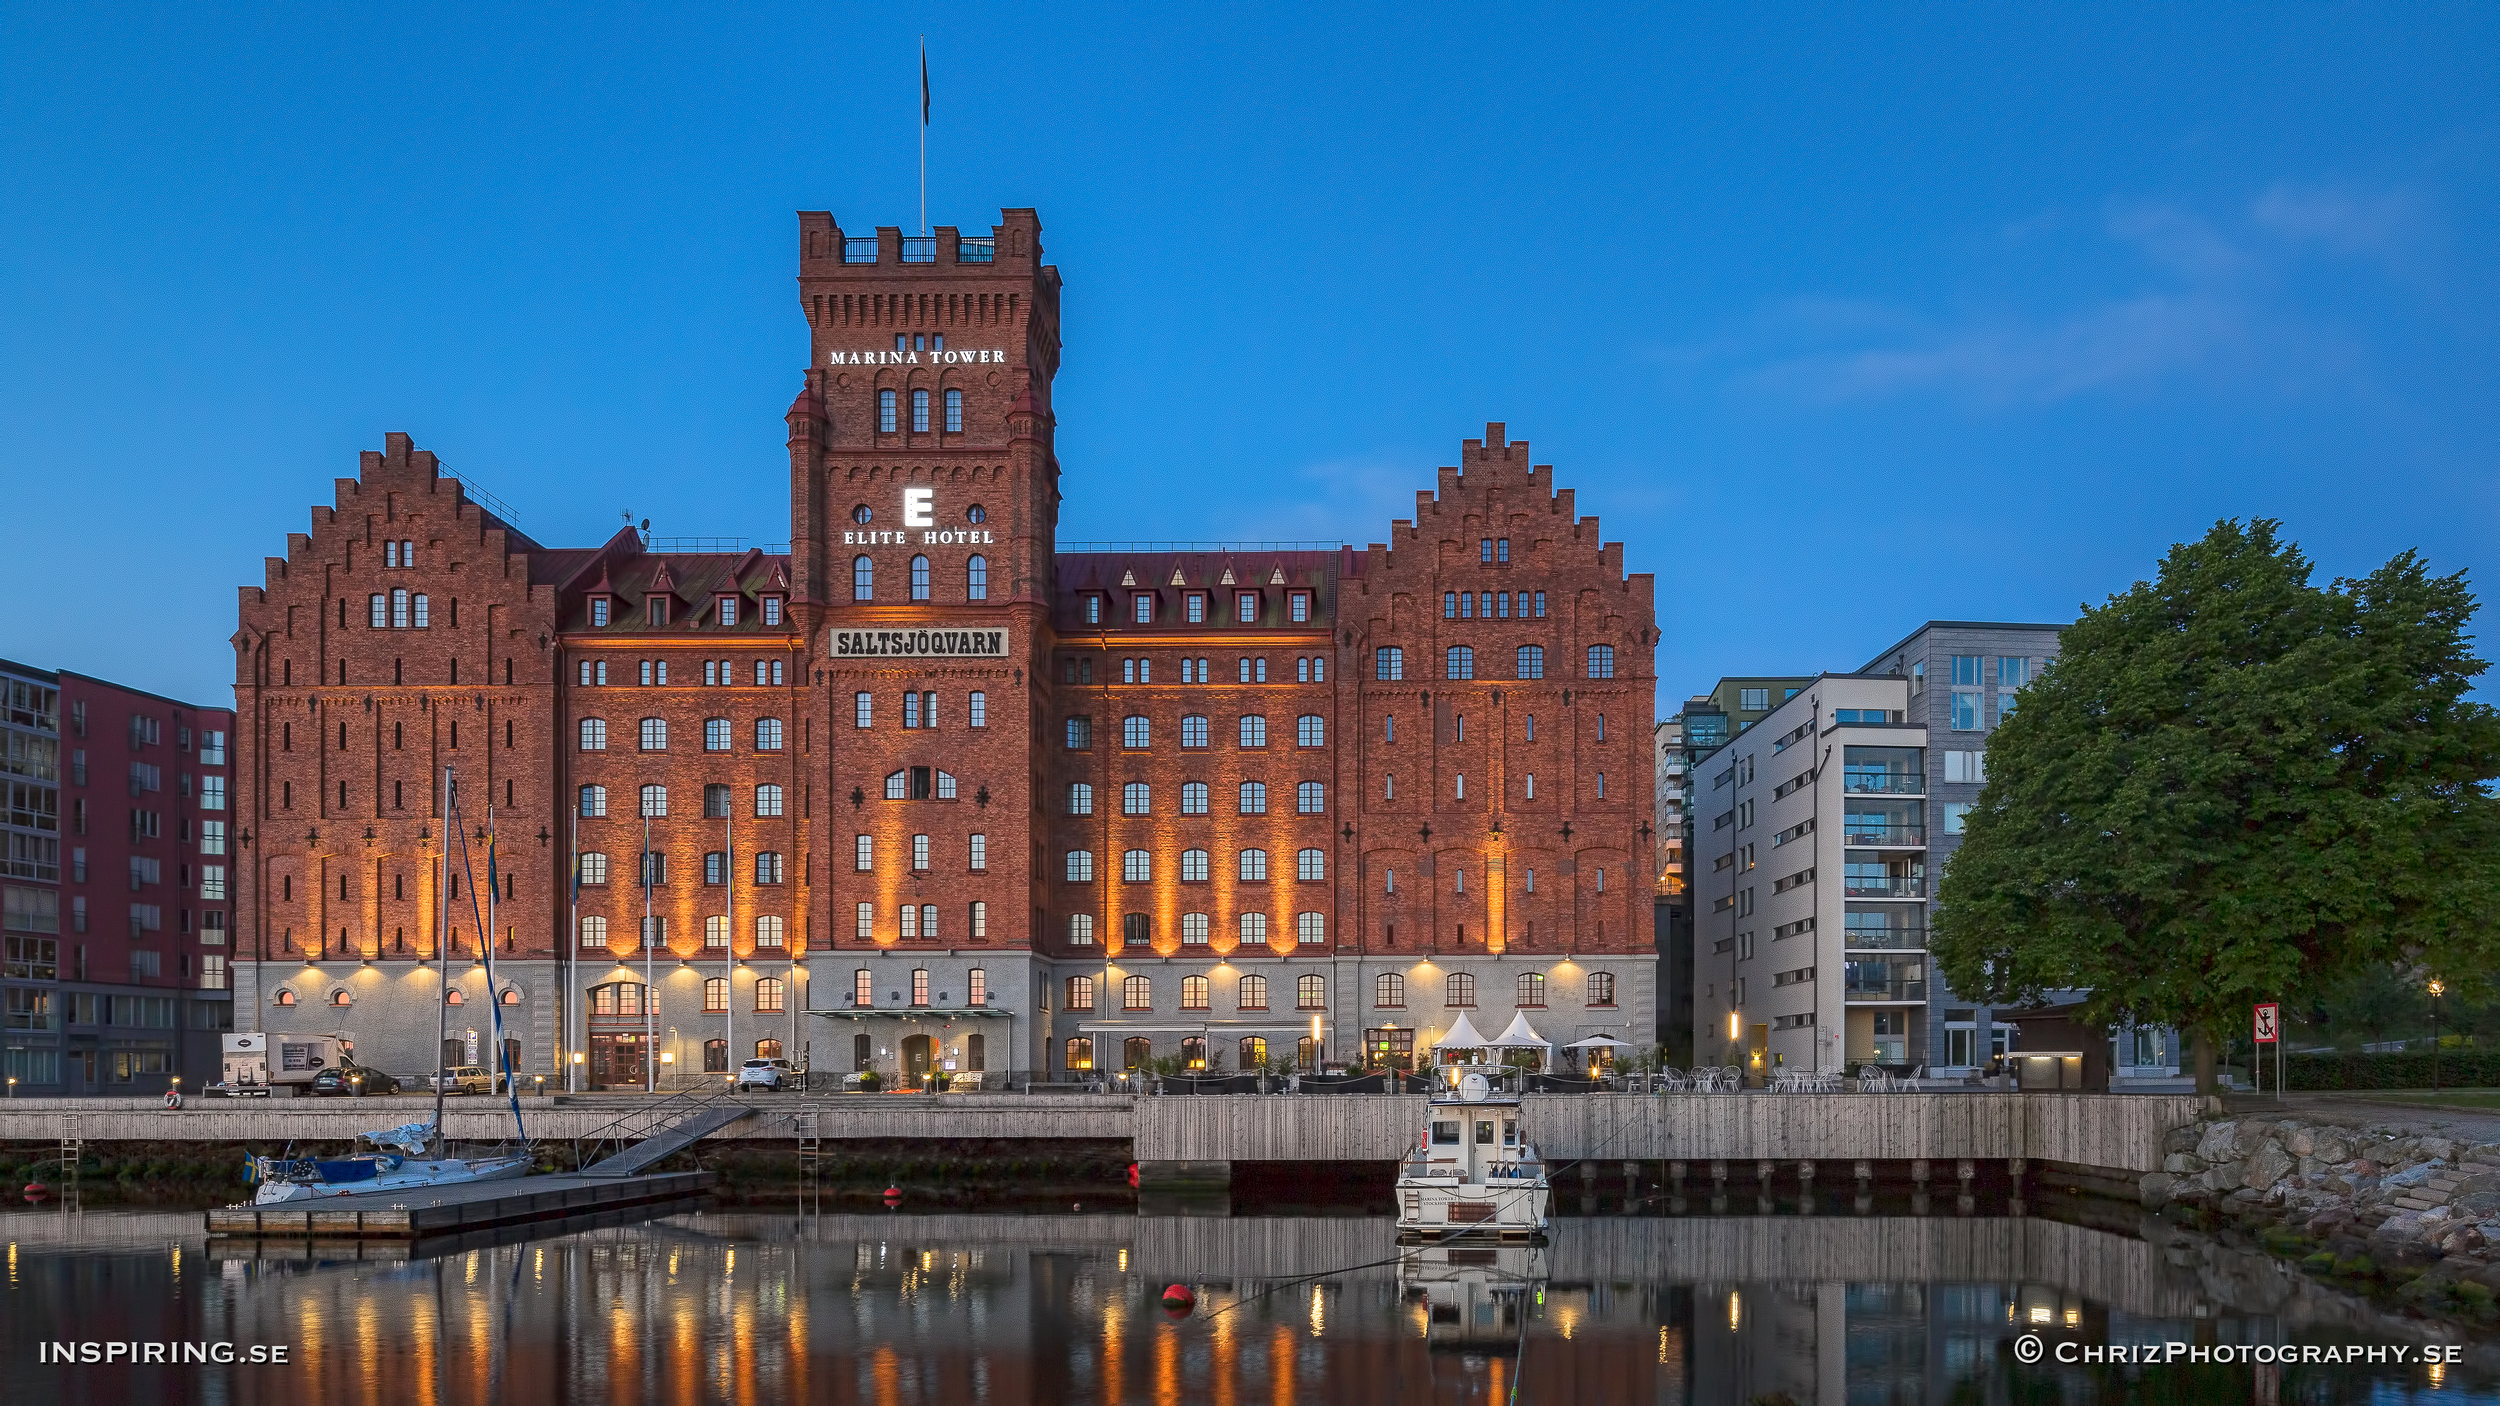 Elite_Hotel_Marina_Tower_Inspiring.se_copyright_ChrizPhotography.se_42.jpg